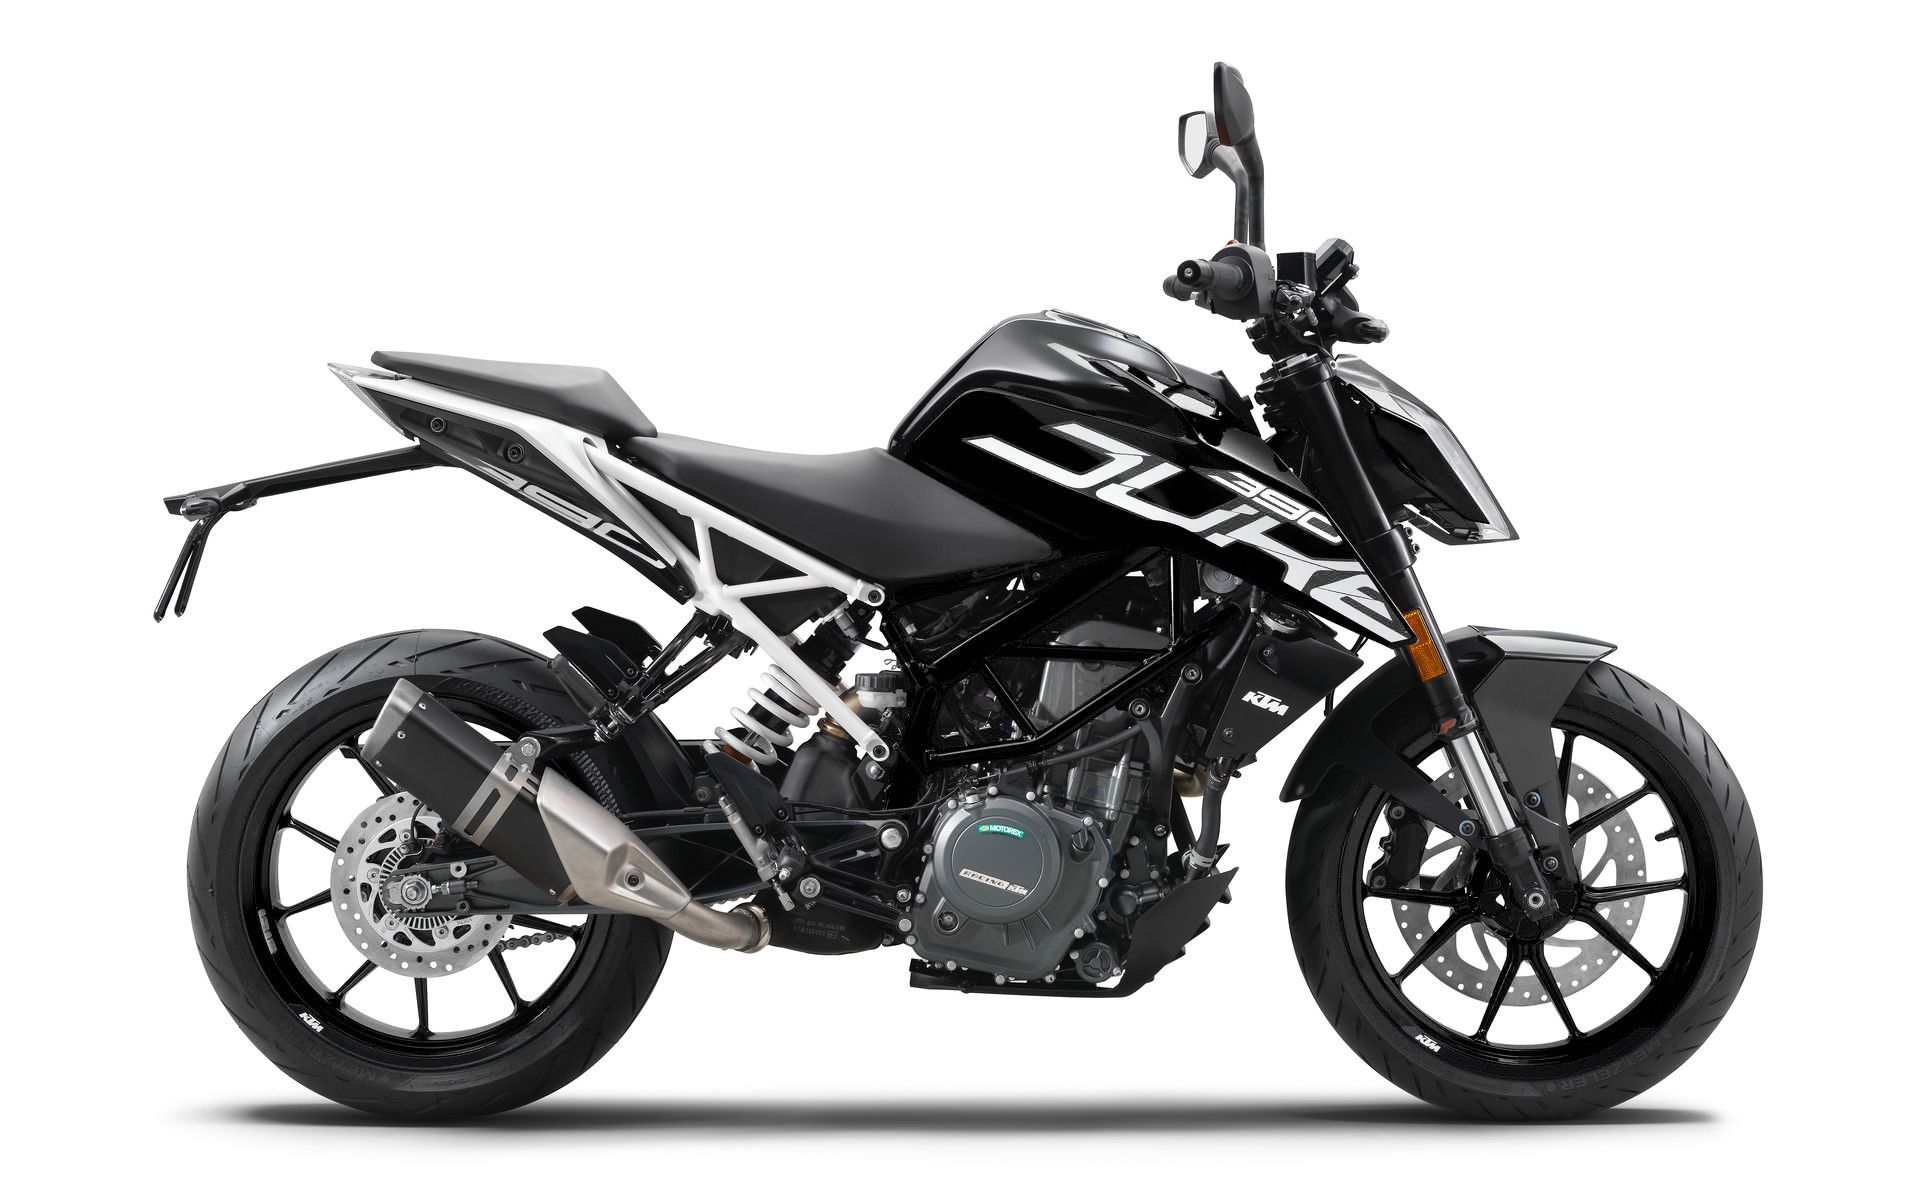 Who else would like the duke 390 in this black and white color scheme